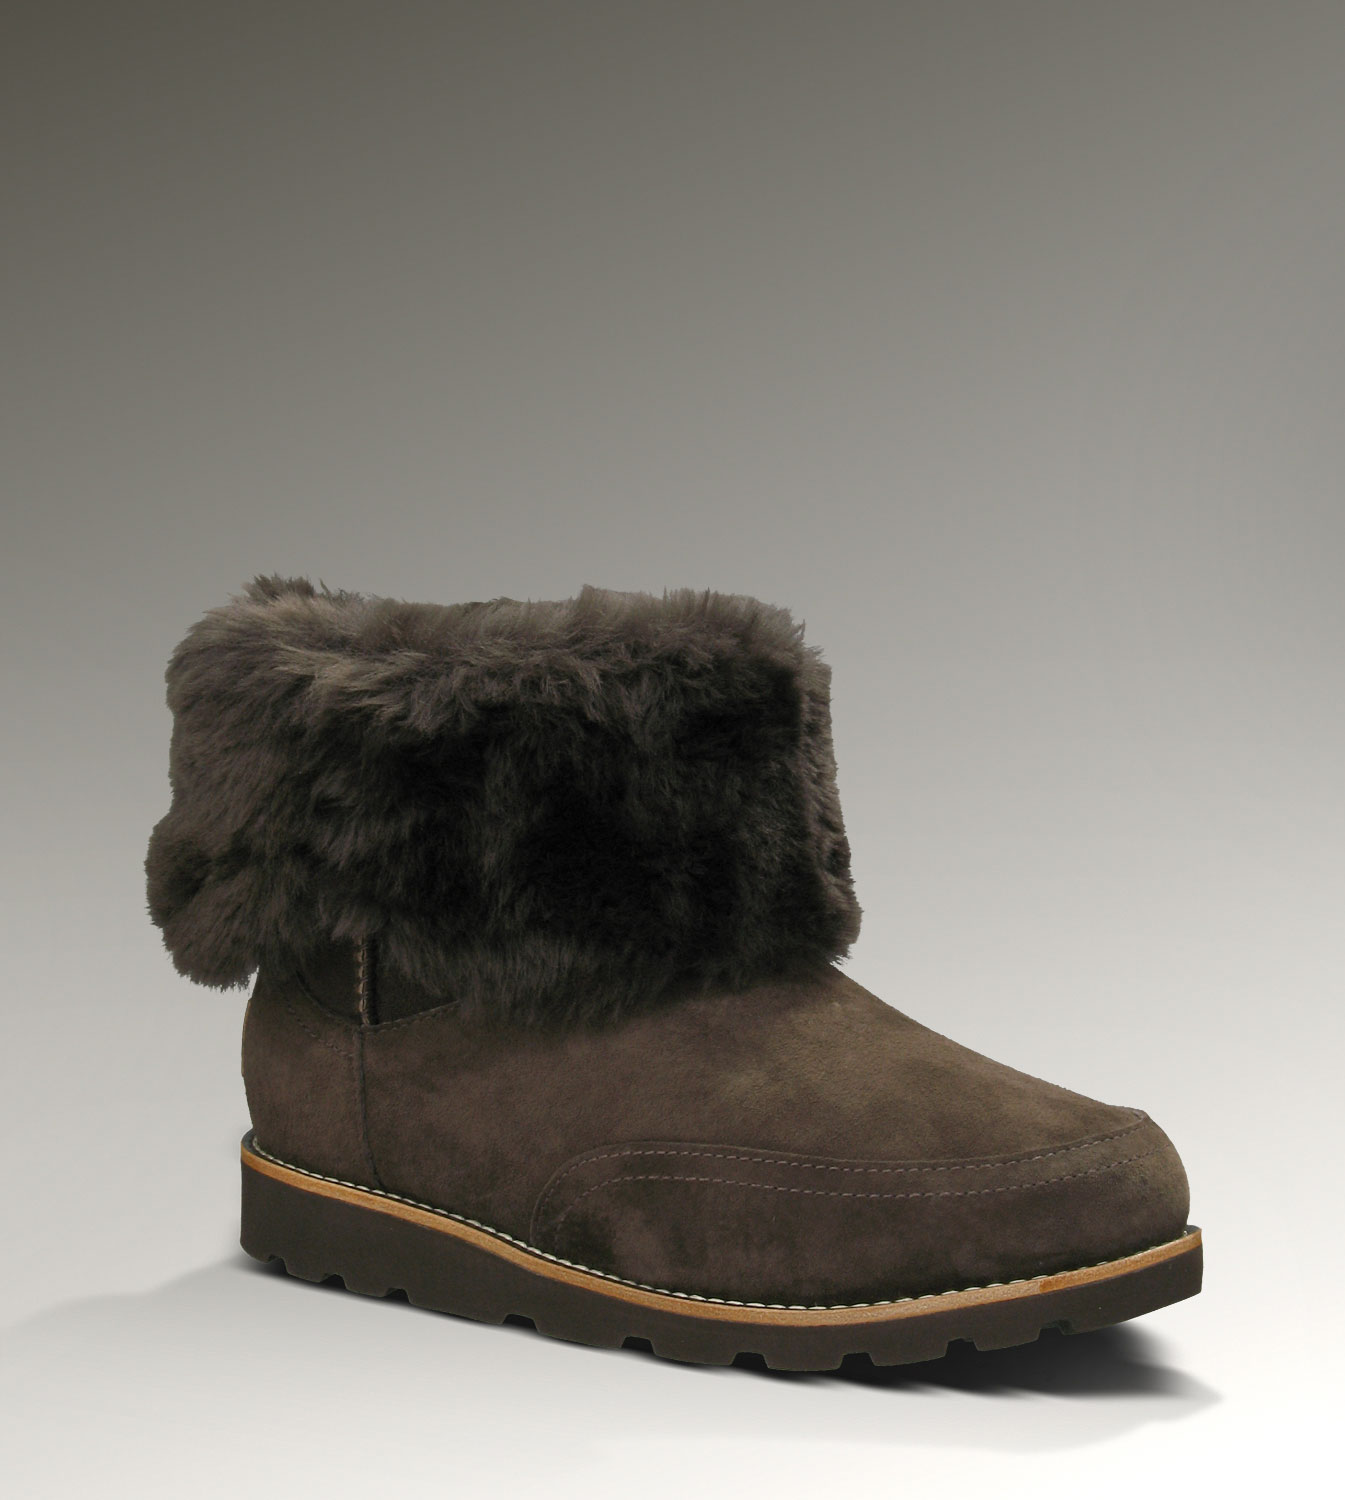 UGG Shanleigh 3216 Chocolate Boots